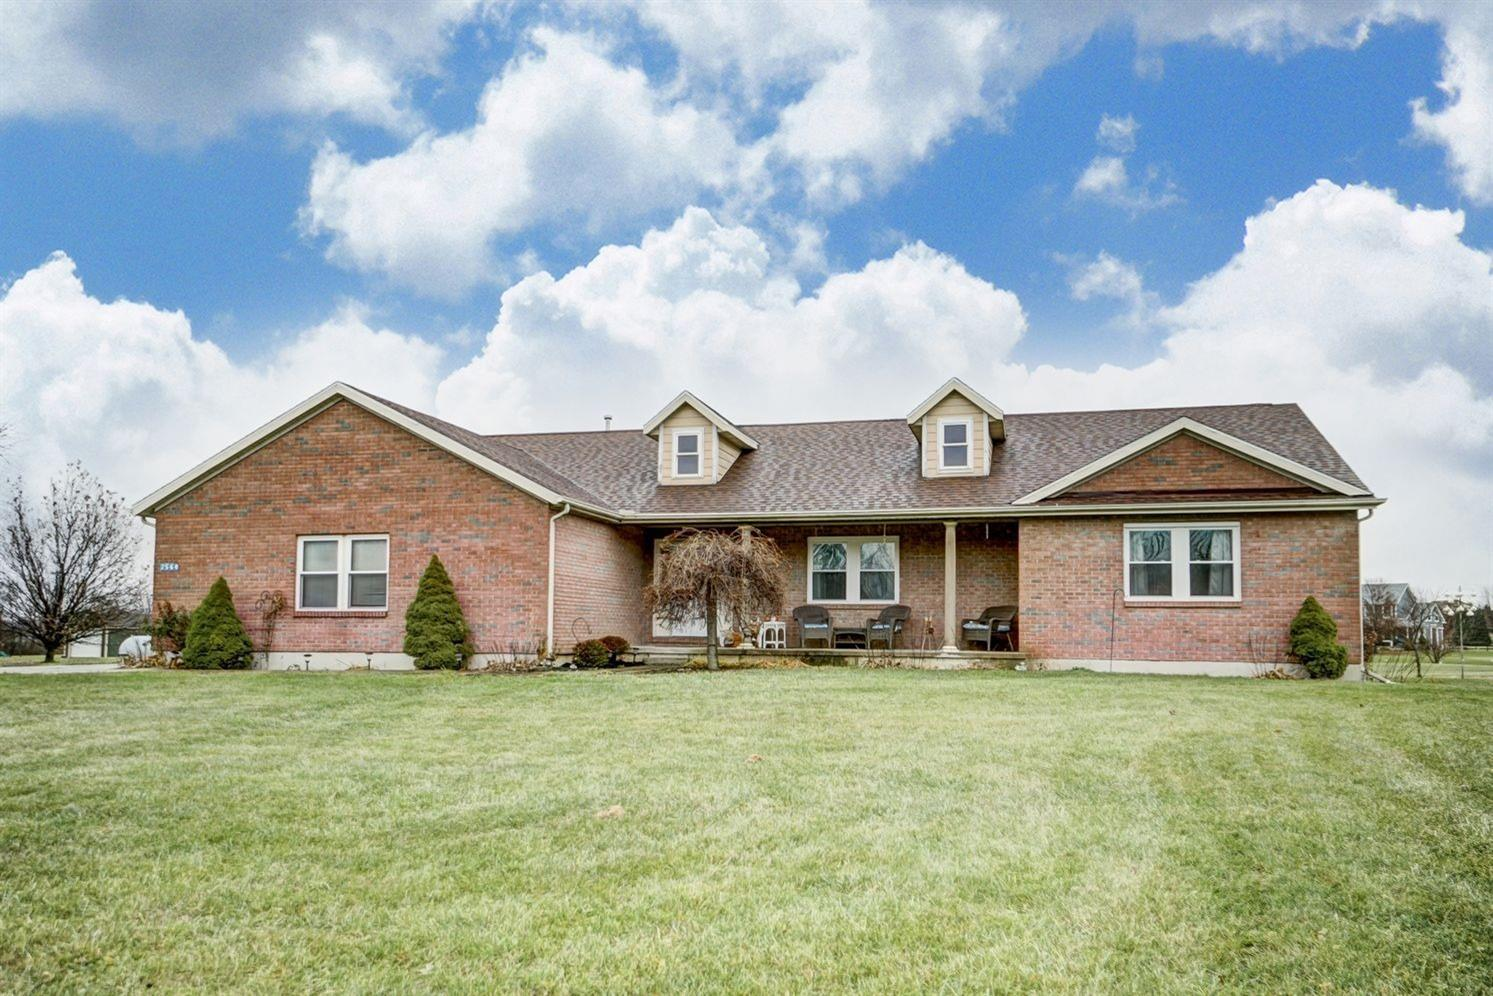 Property for sale at 2560 Emerald Way, Clearcreek Twp.,  OH 45068